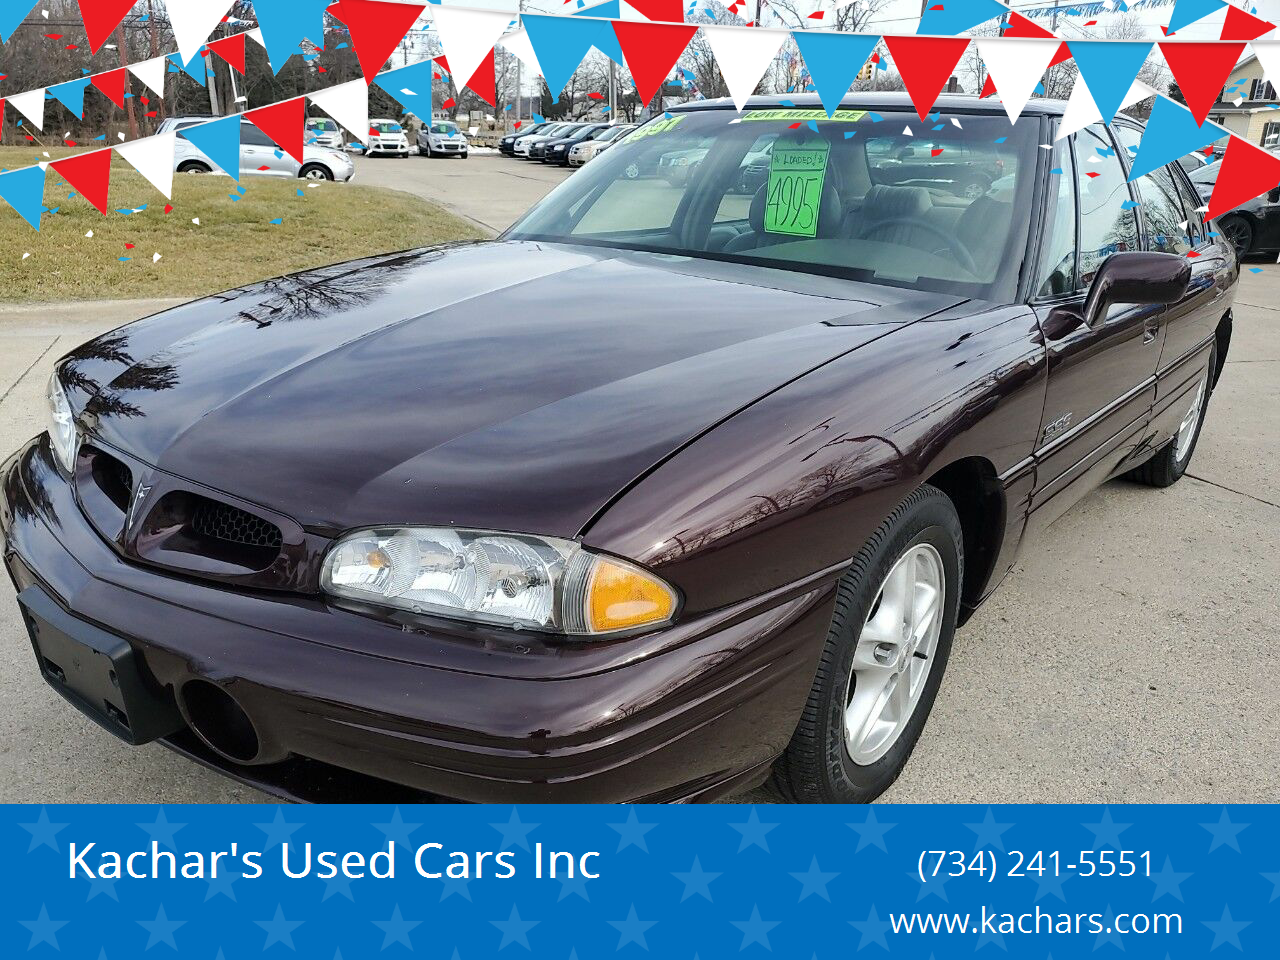 used 1997 pontiac bonneville for sale carsforsale com used 1997 pontiac bonneville for sale